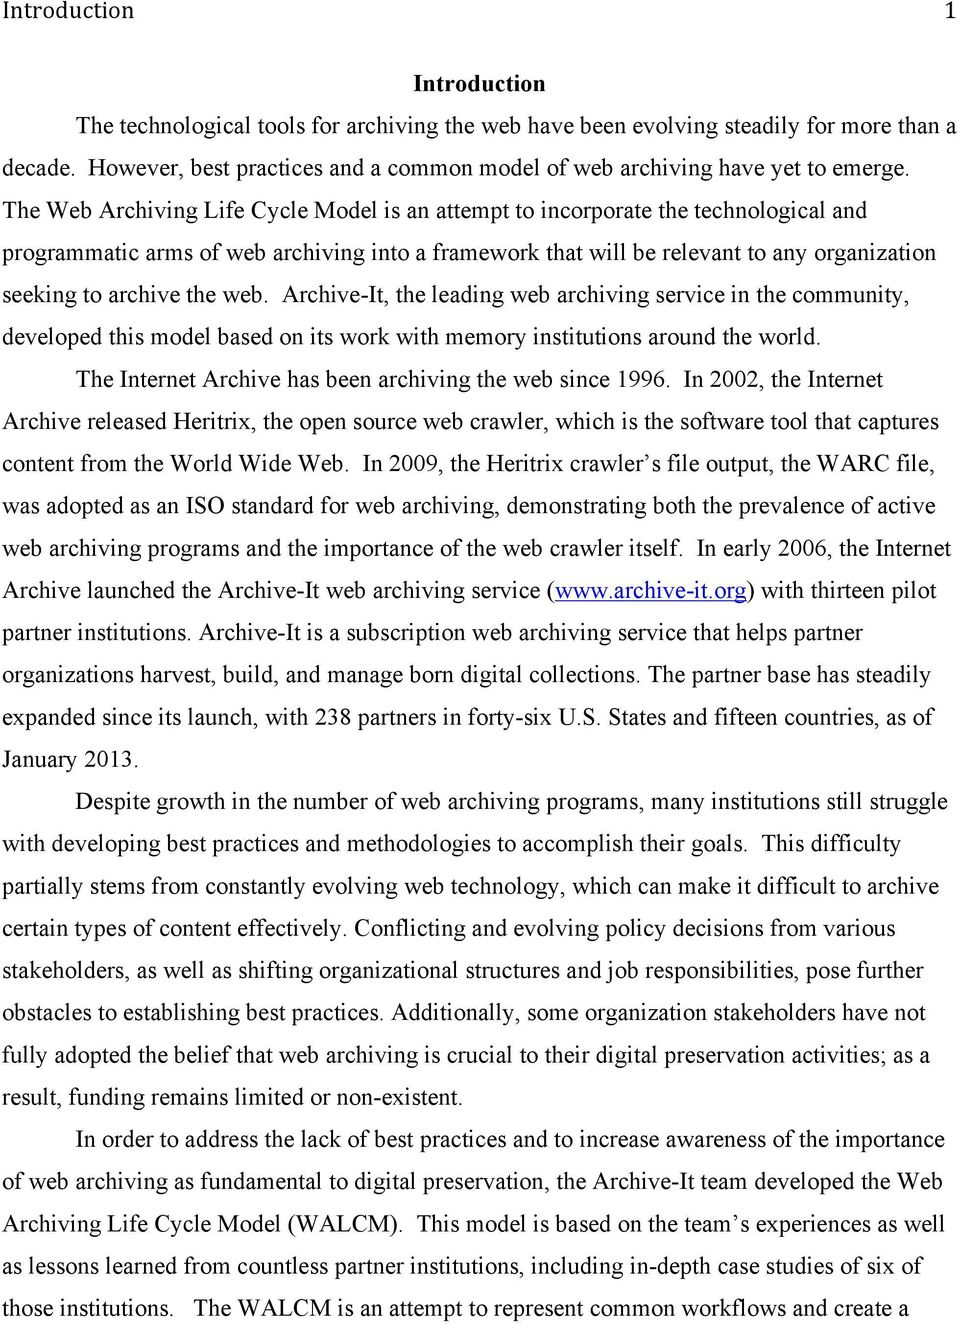 The Web Archiving Life Cycle Model is an attempt to incorporate the technological and programmatic arms of web archiving into a framework that will be relevant to any organization seeking to archive